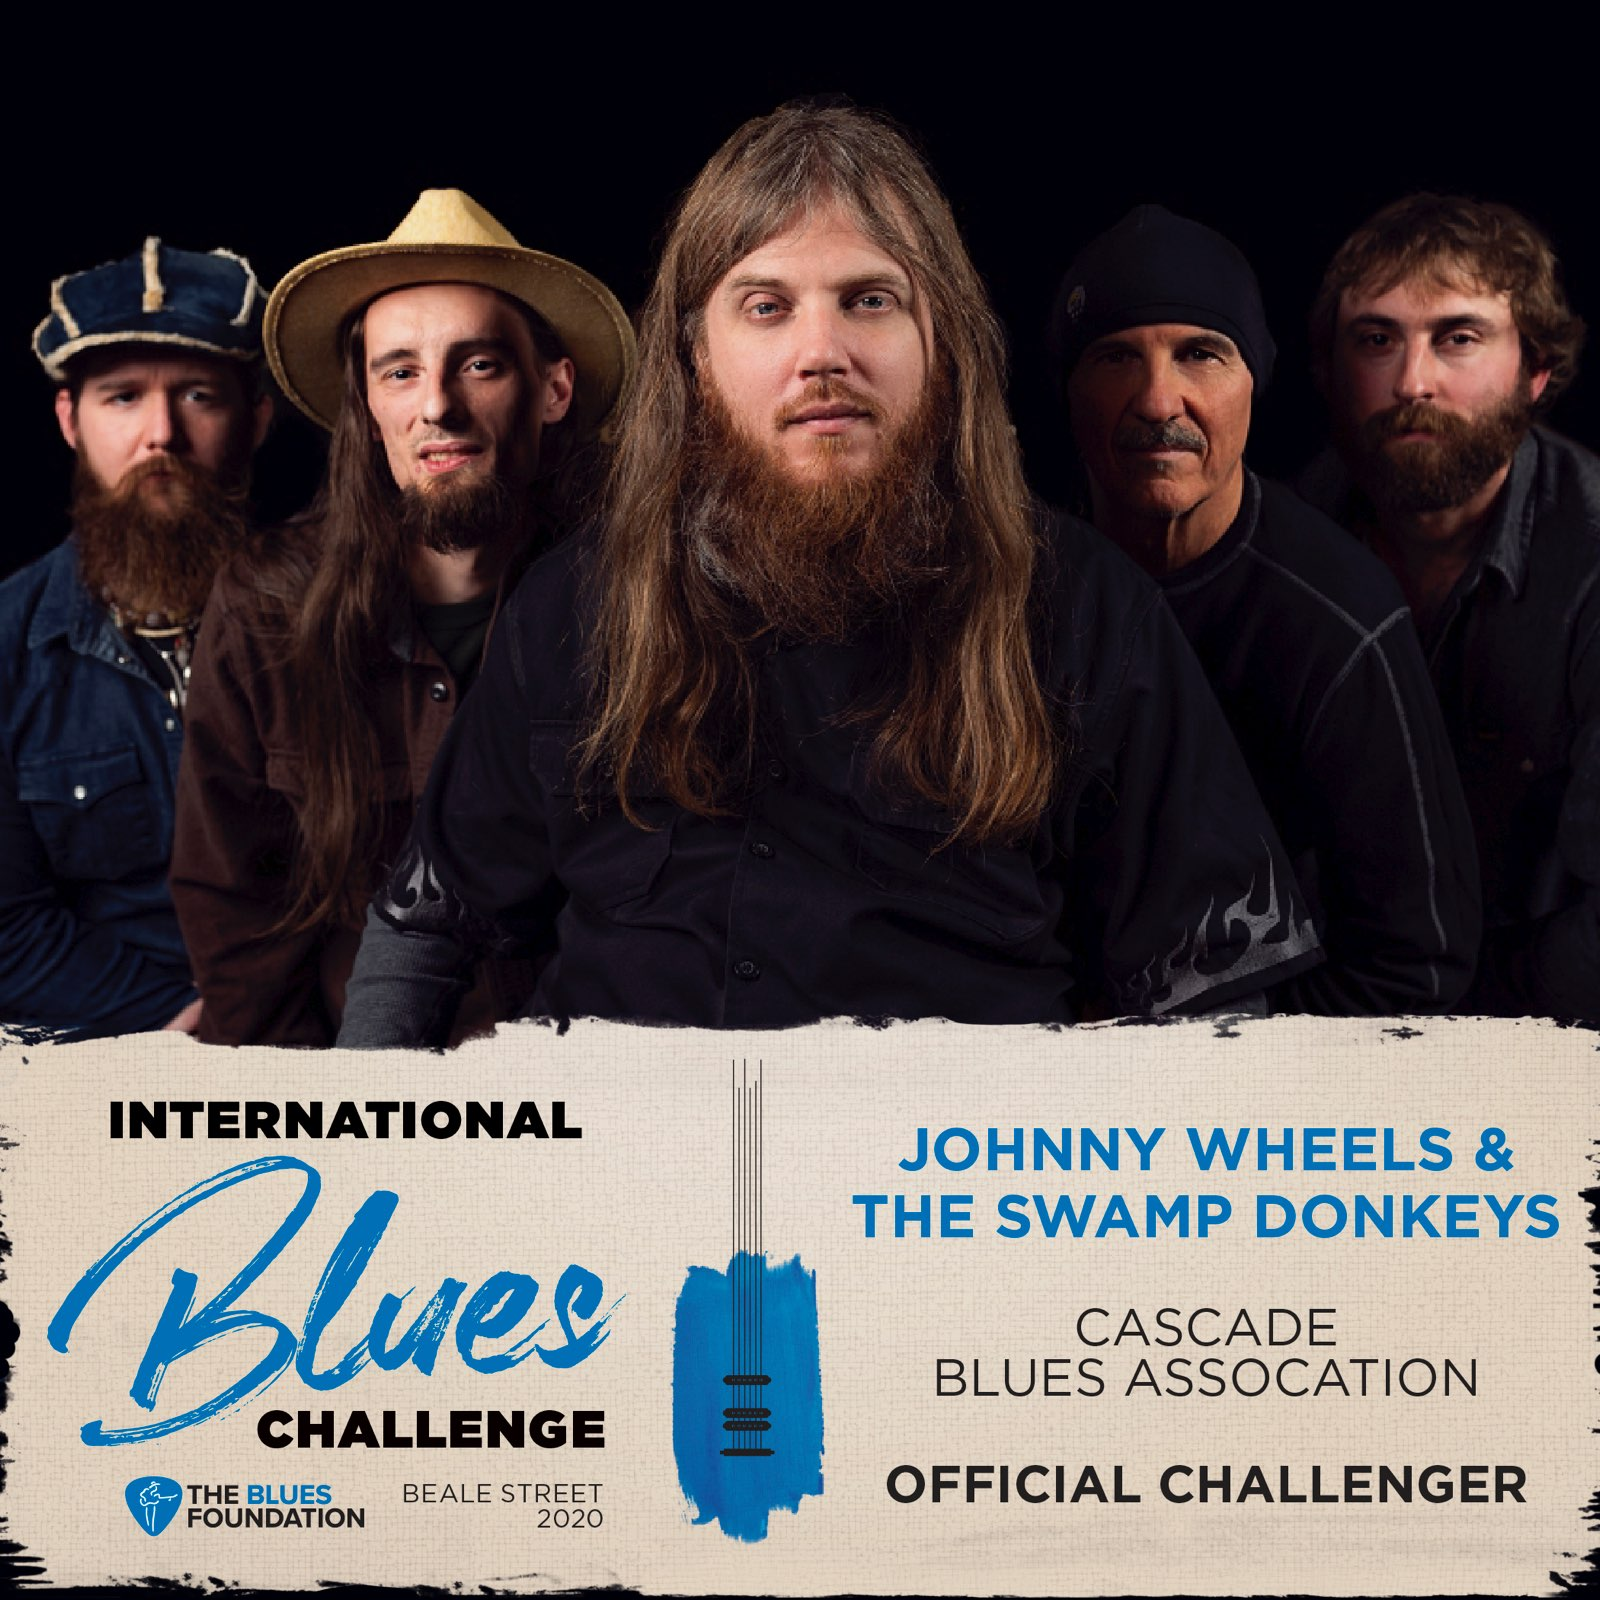 Johnny Wheels and The Swamp Donkeys Band - International Blues Challenge 2020 Poster